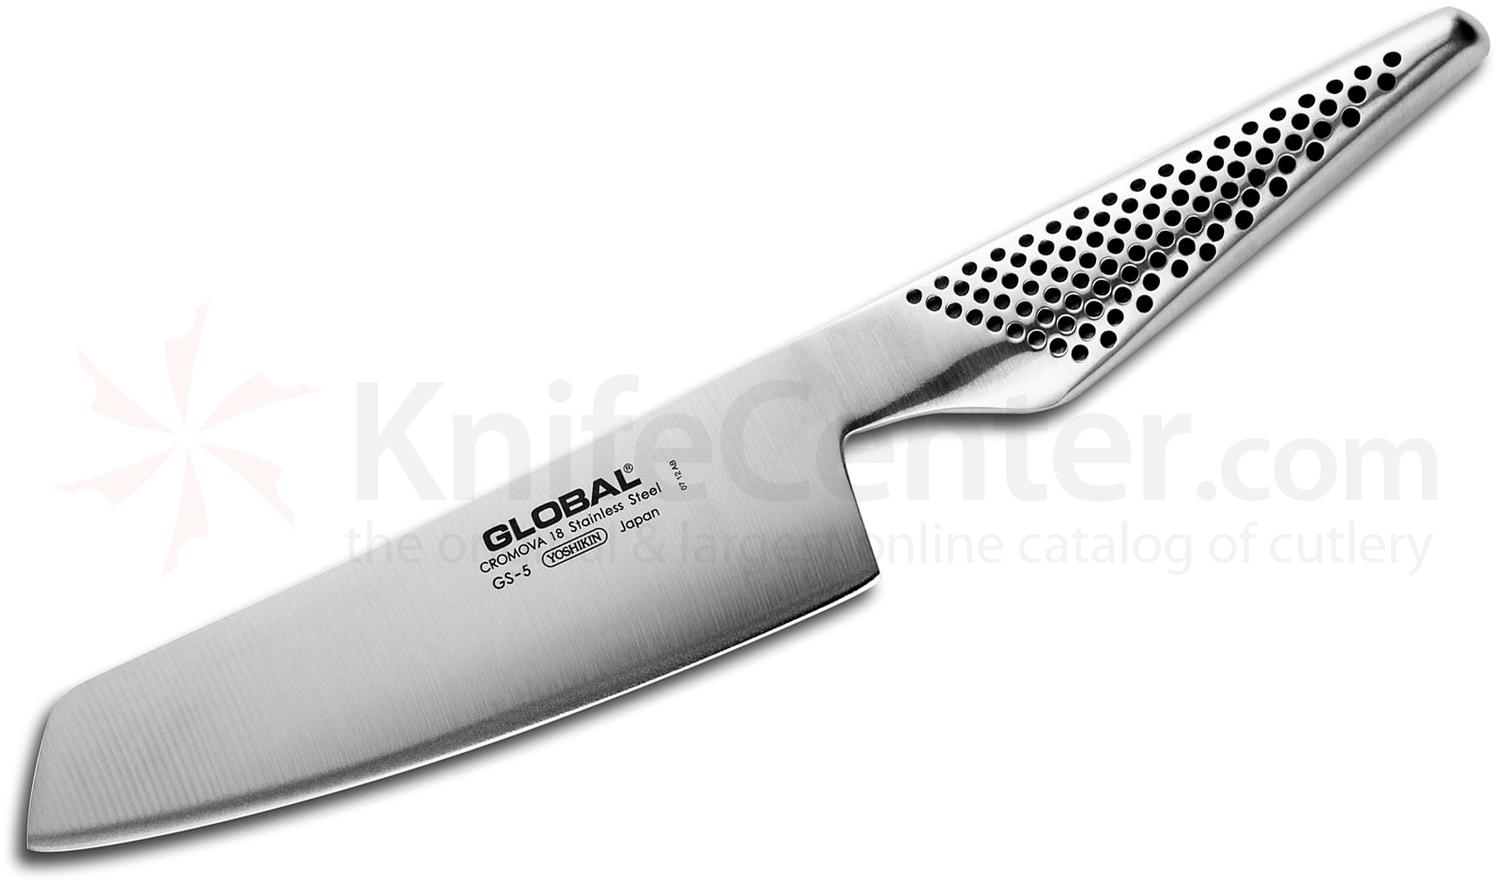 Global Gs 5 Kitchen Inch Vegetable Knife